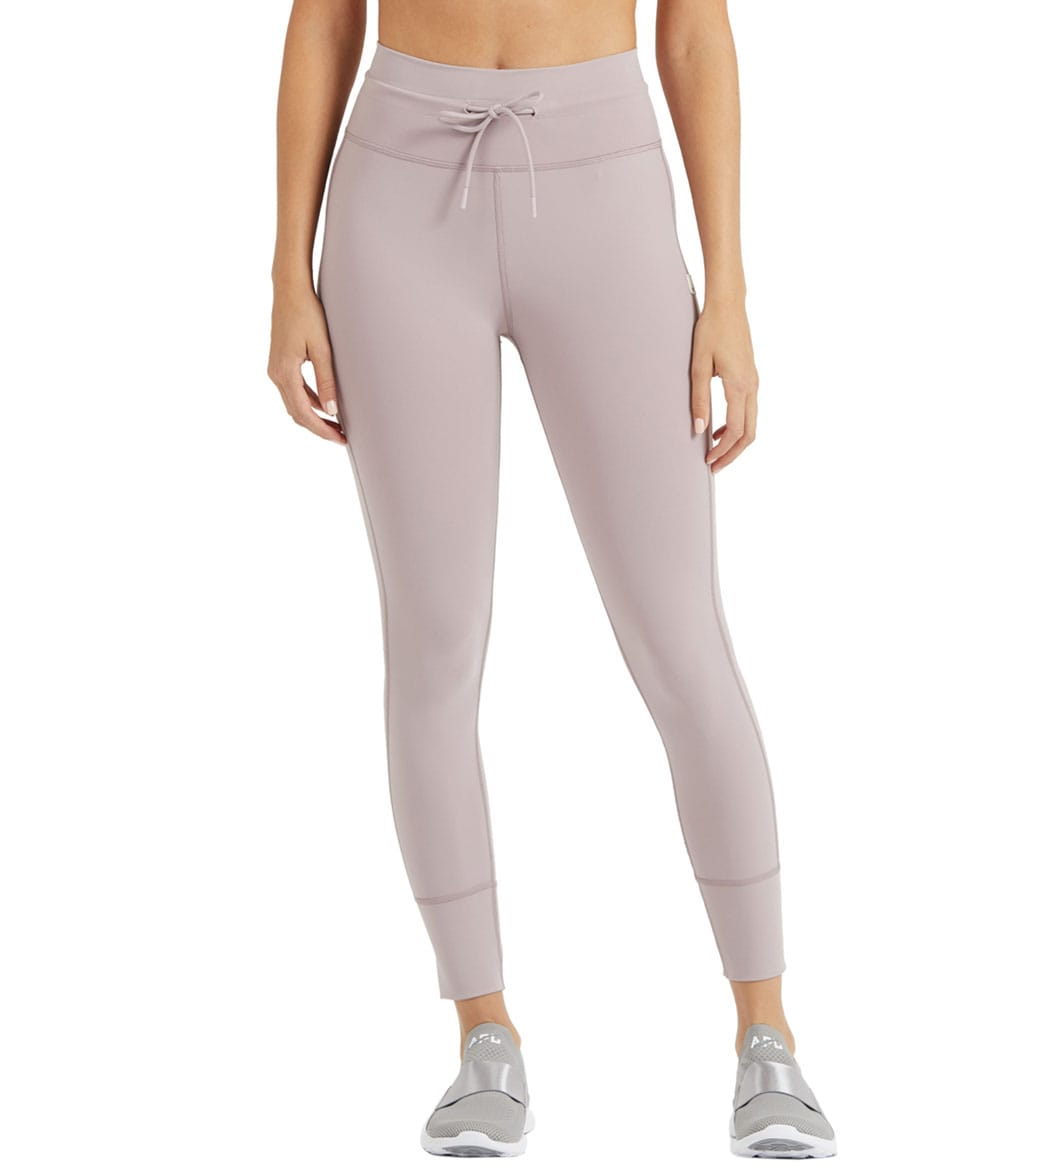 The name speaks for itself, wear the Vuori Daily Leggings on the daily. Features4-way stretch Moisture wicking Quick drying Compressive fit 24 inseam Cut like a jogger but fits like a legging Great for yoga, running, travel, and chillingDetailsFabric: 81% Nylon, 19% LycraColor: Black, PurpleStyle Features: NoneFit: TightInseam: 24\\\